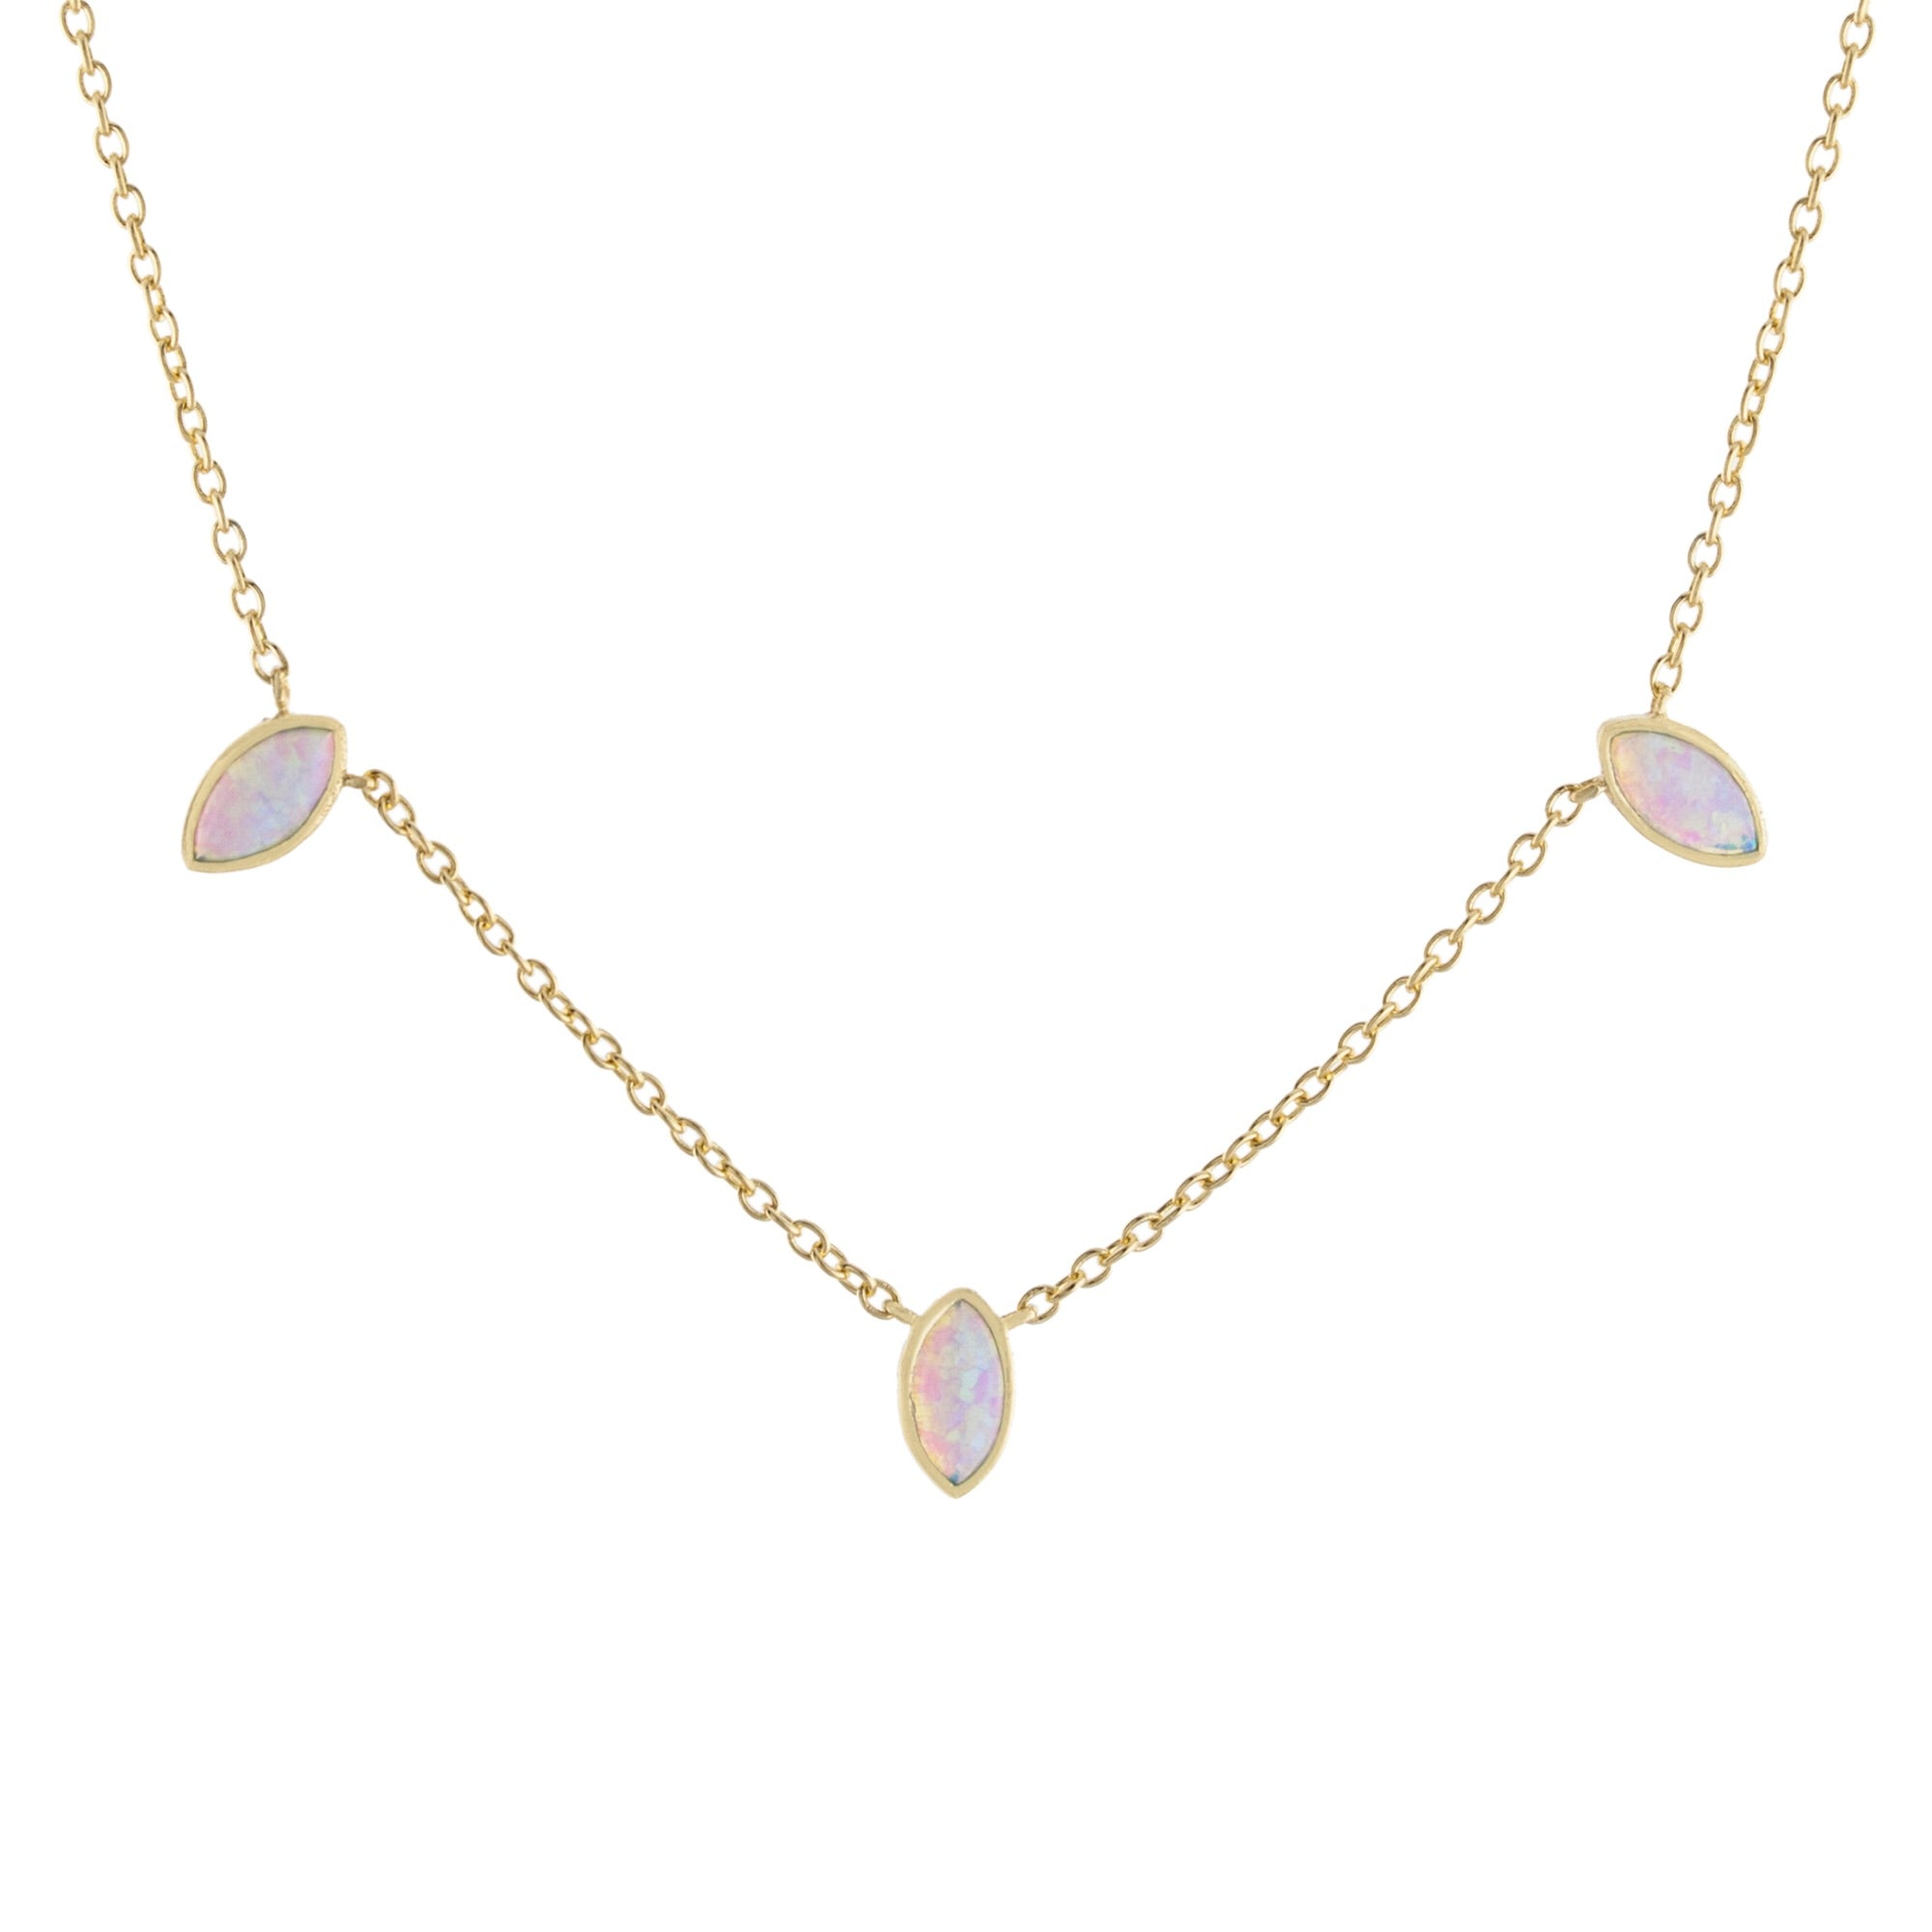 Triple Opal Necklace